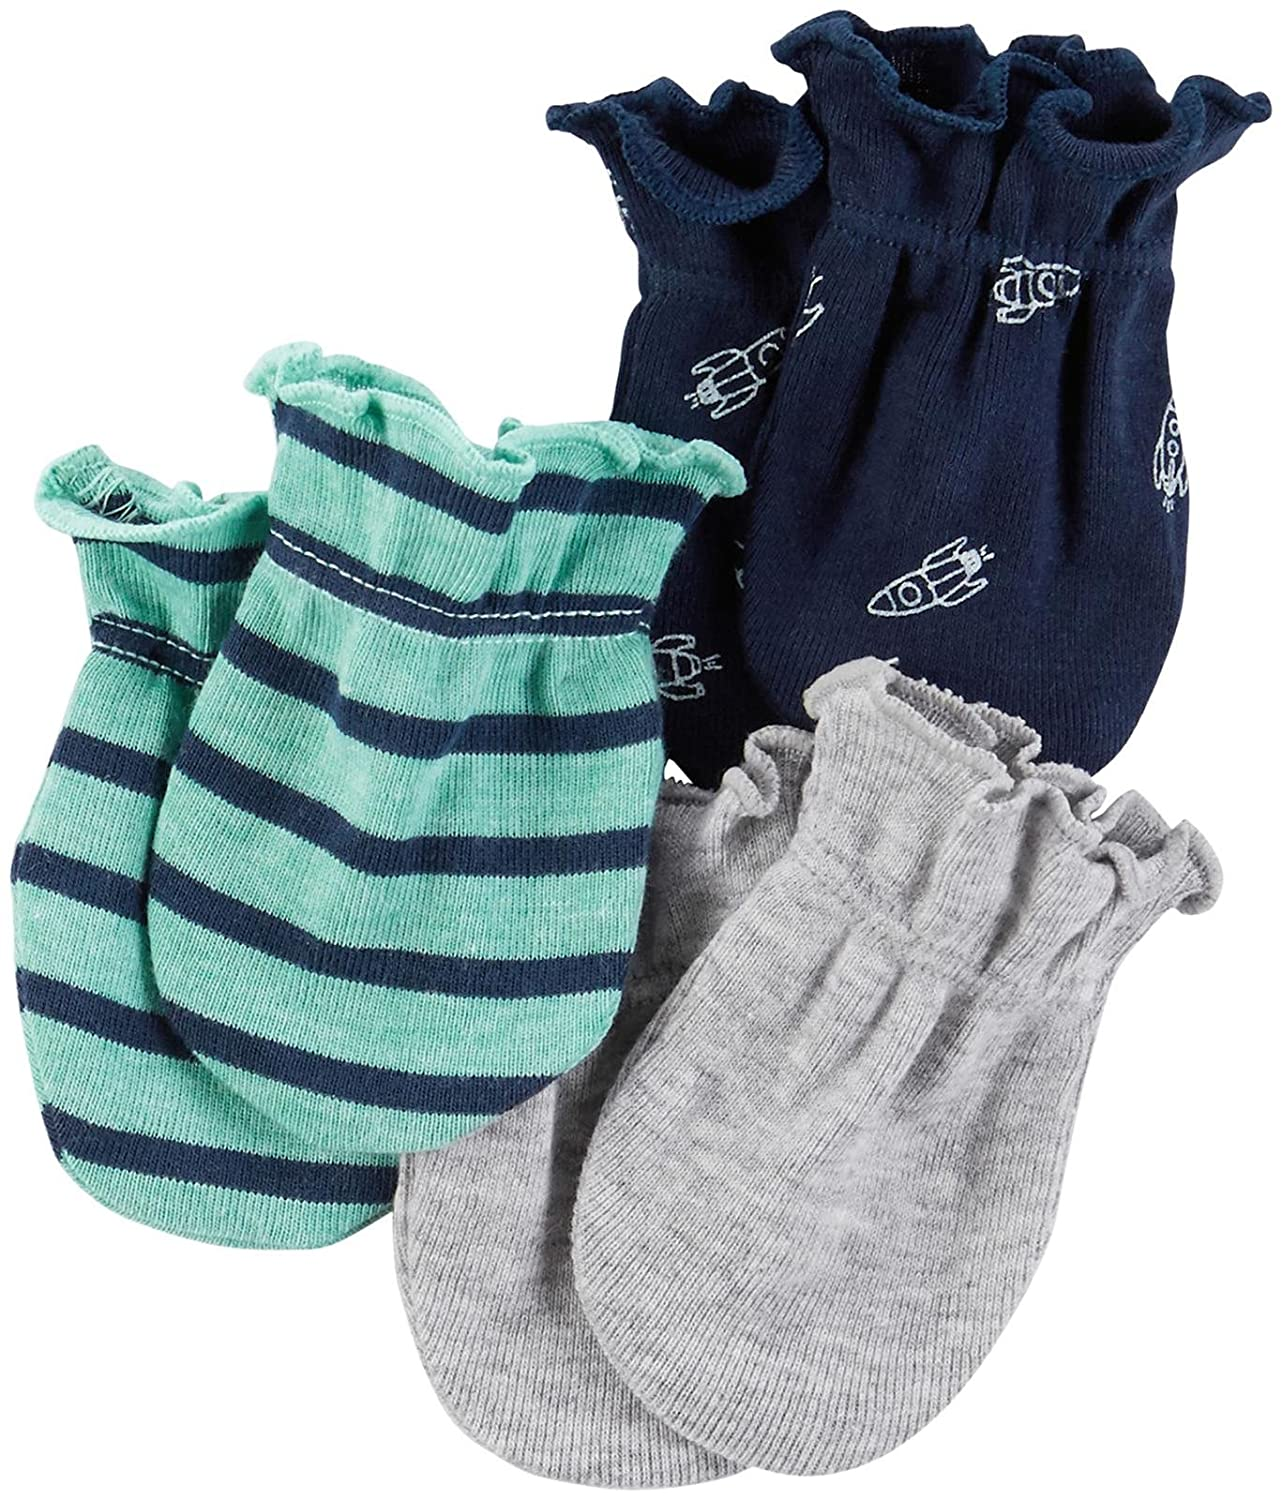 Carter's Baby Boys Mitts 126g555 Navy 0-3 Months Baby Carters